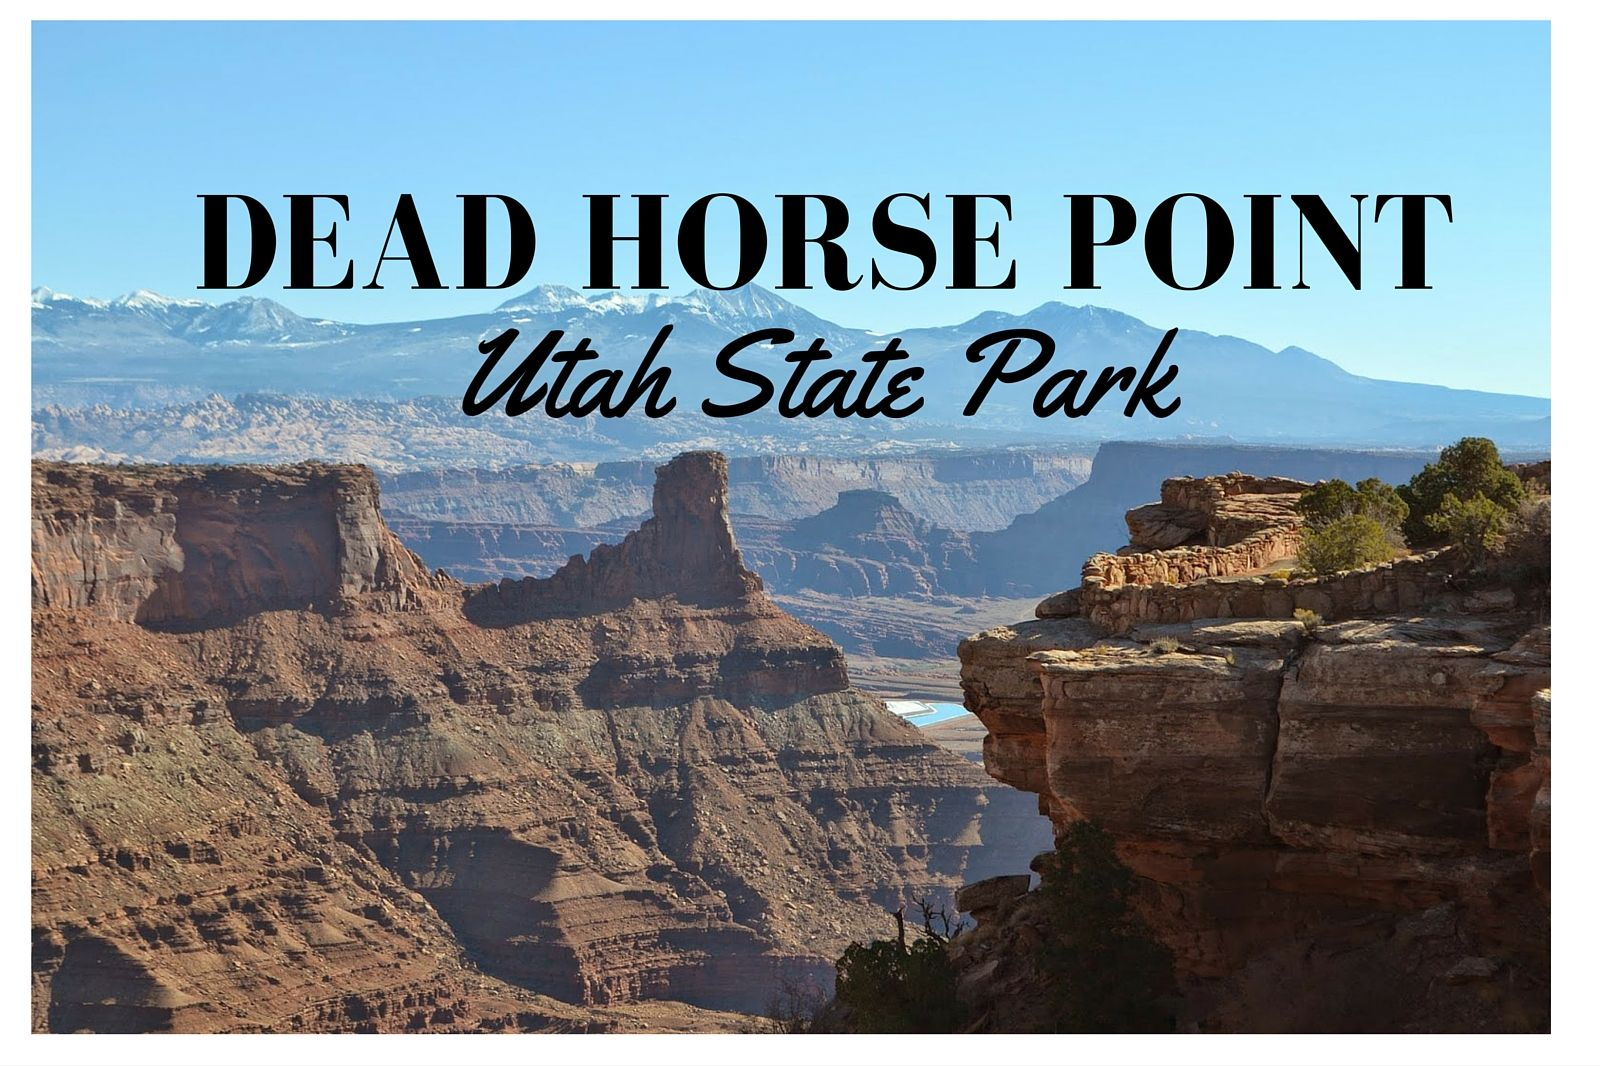 Visiting Dead Horse Point State Park, a dog friendly park